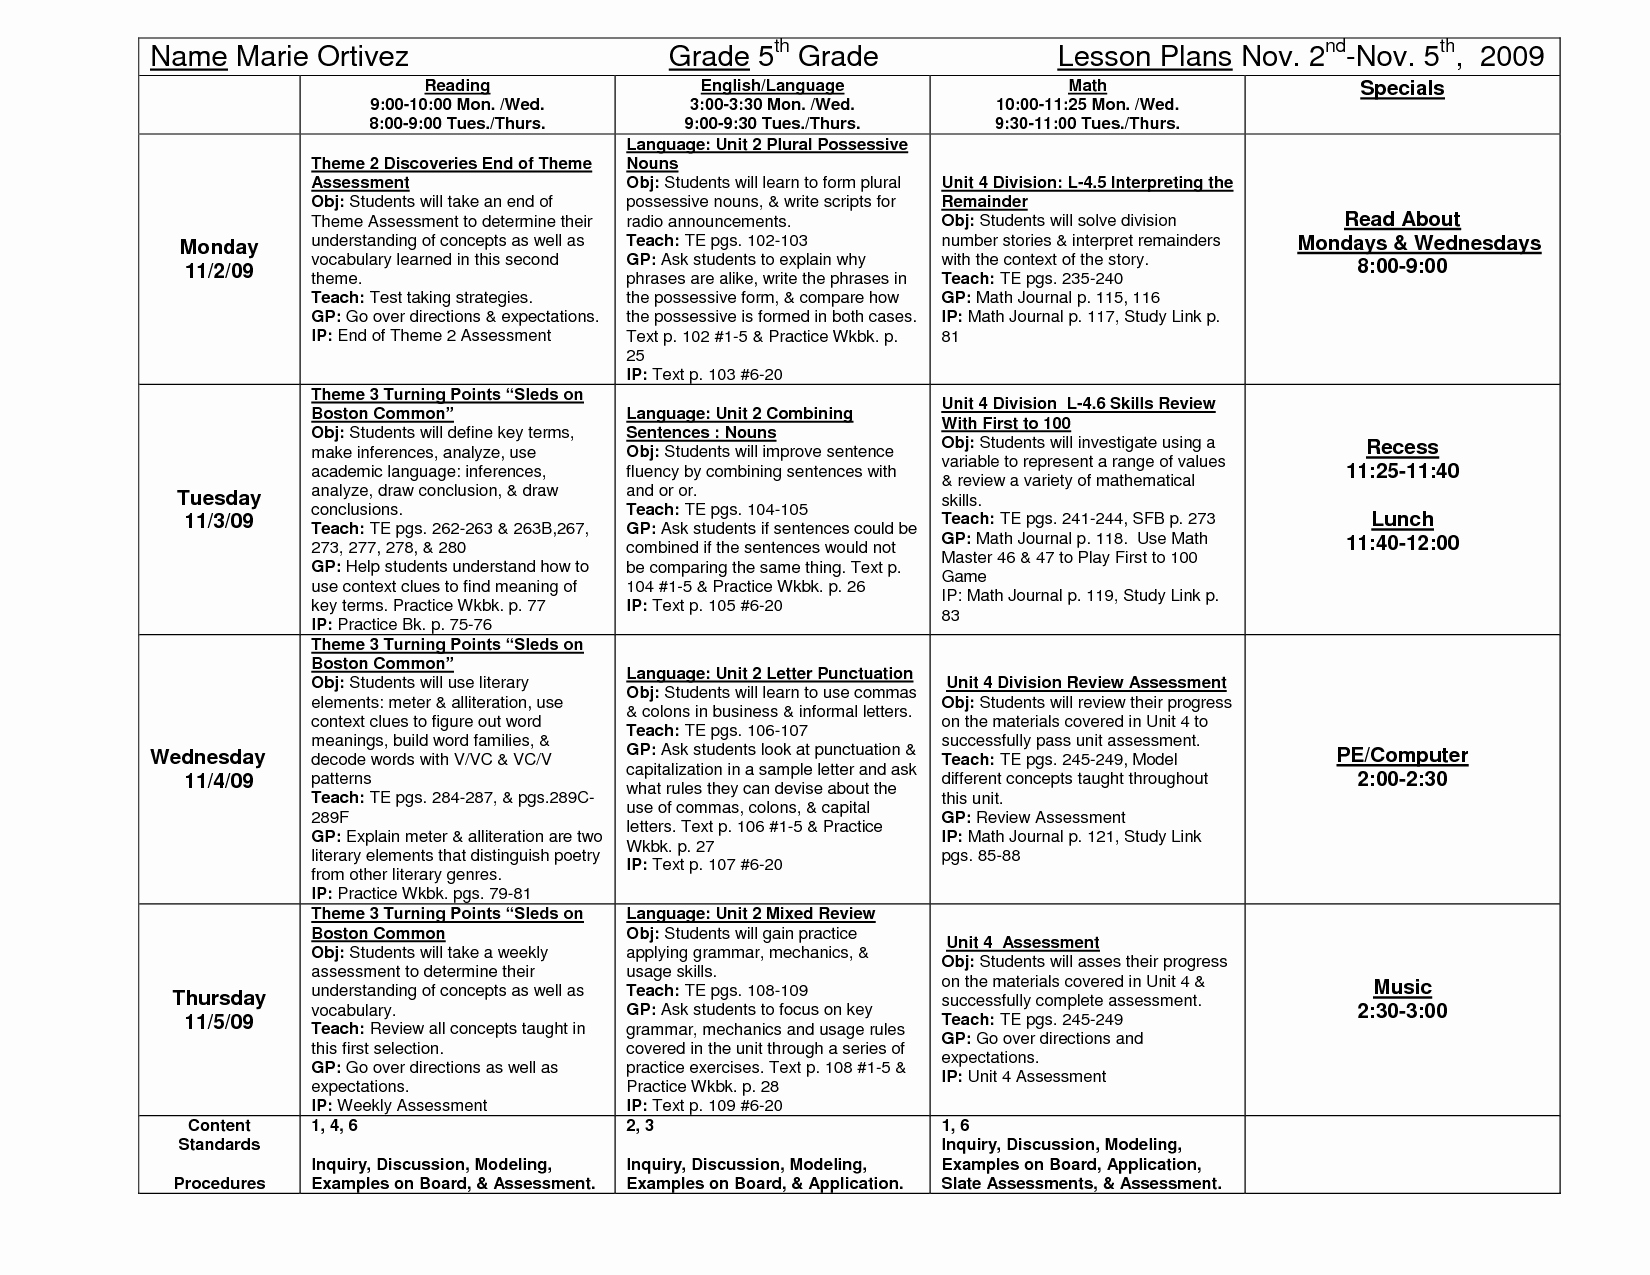 5th Grade Lesson Plan Template Inspirational Lesson Plan 5th Grade Daily Lesson Plan Templateratliff